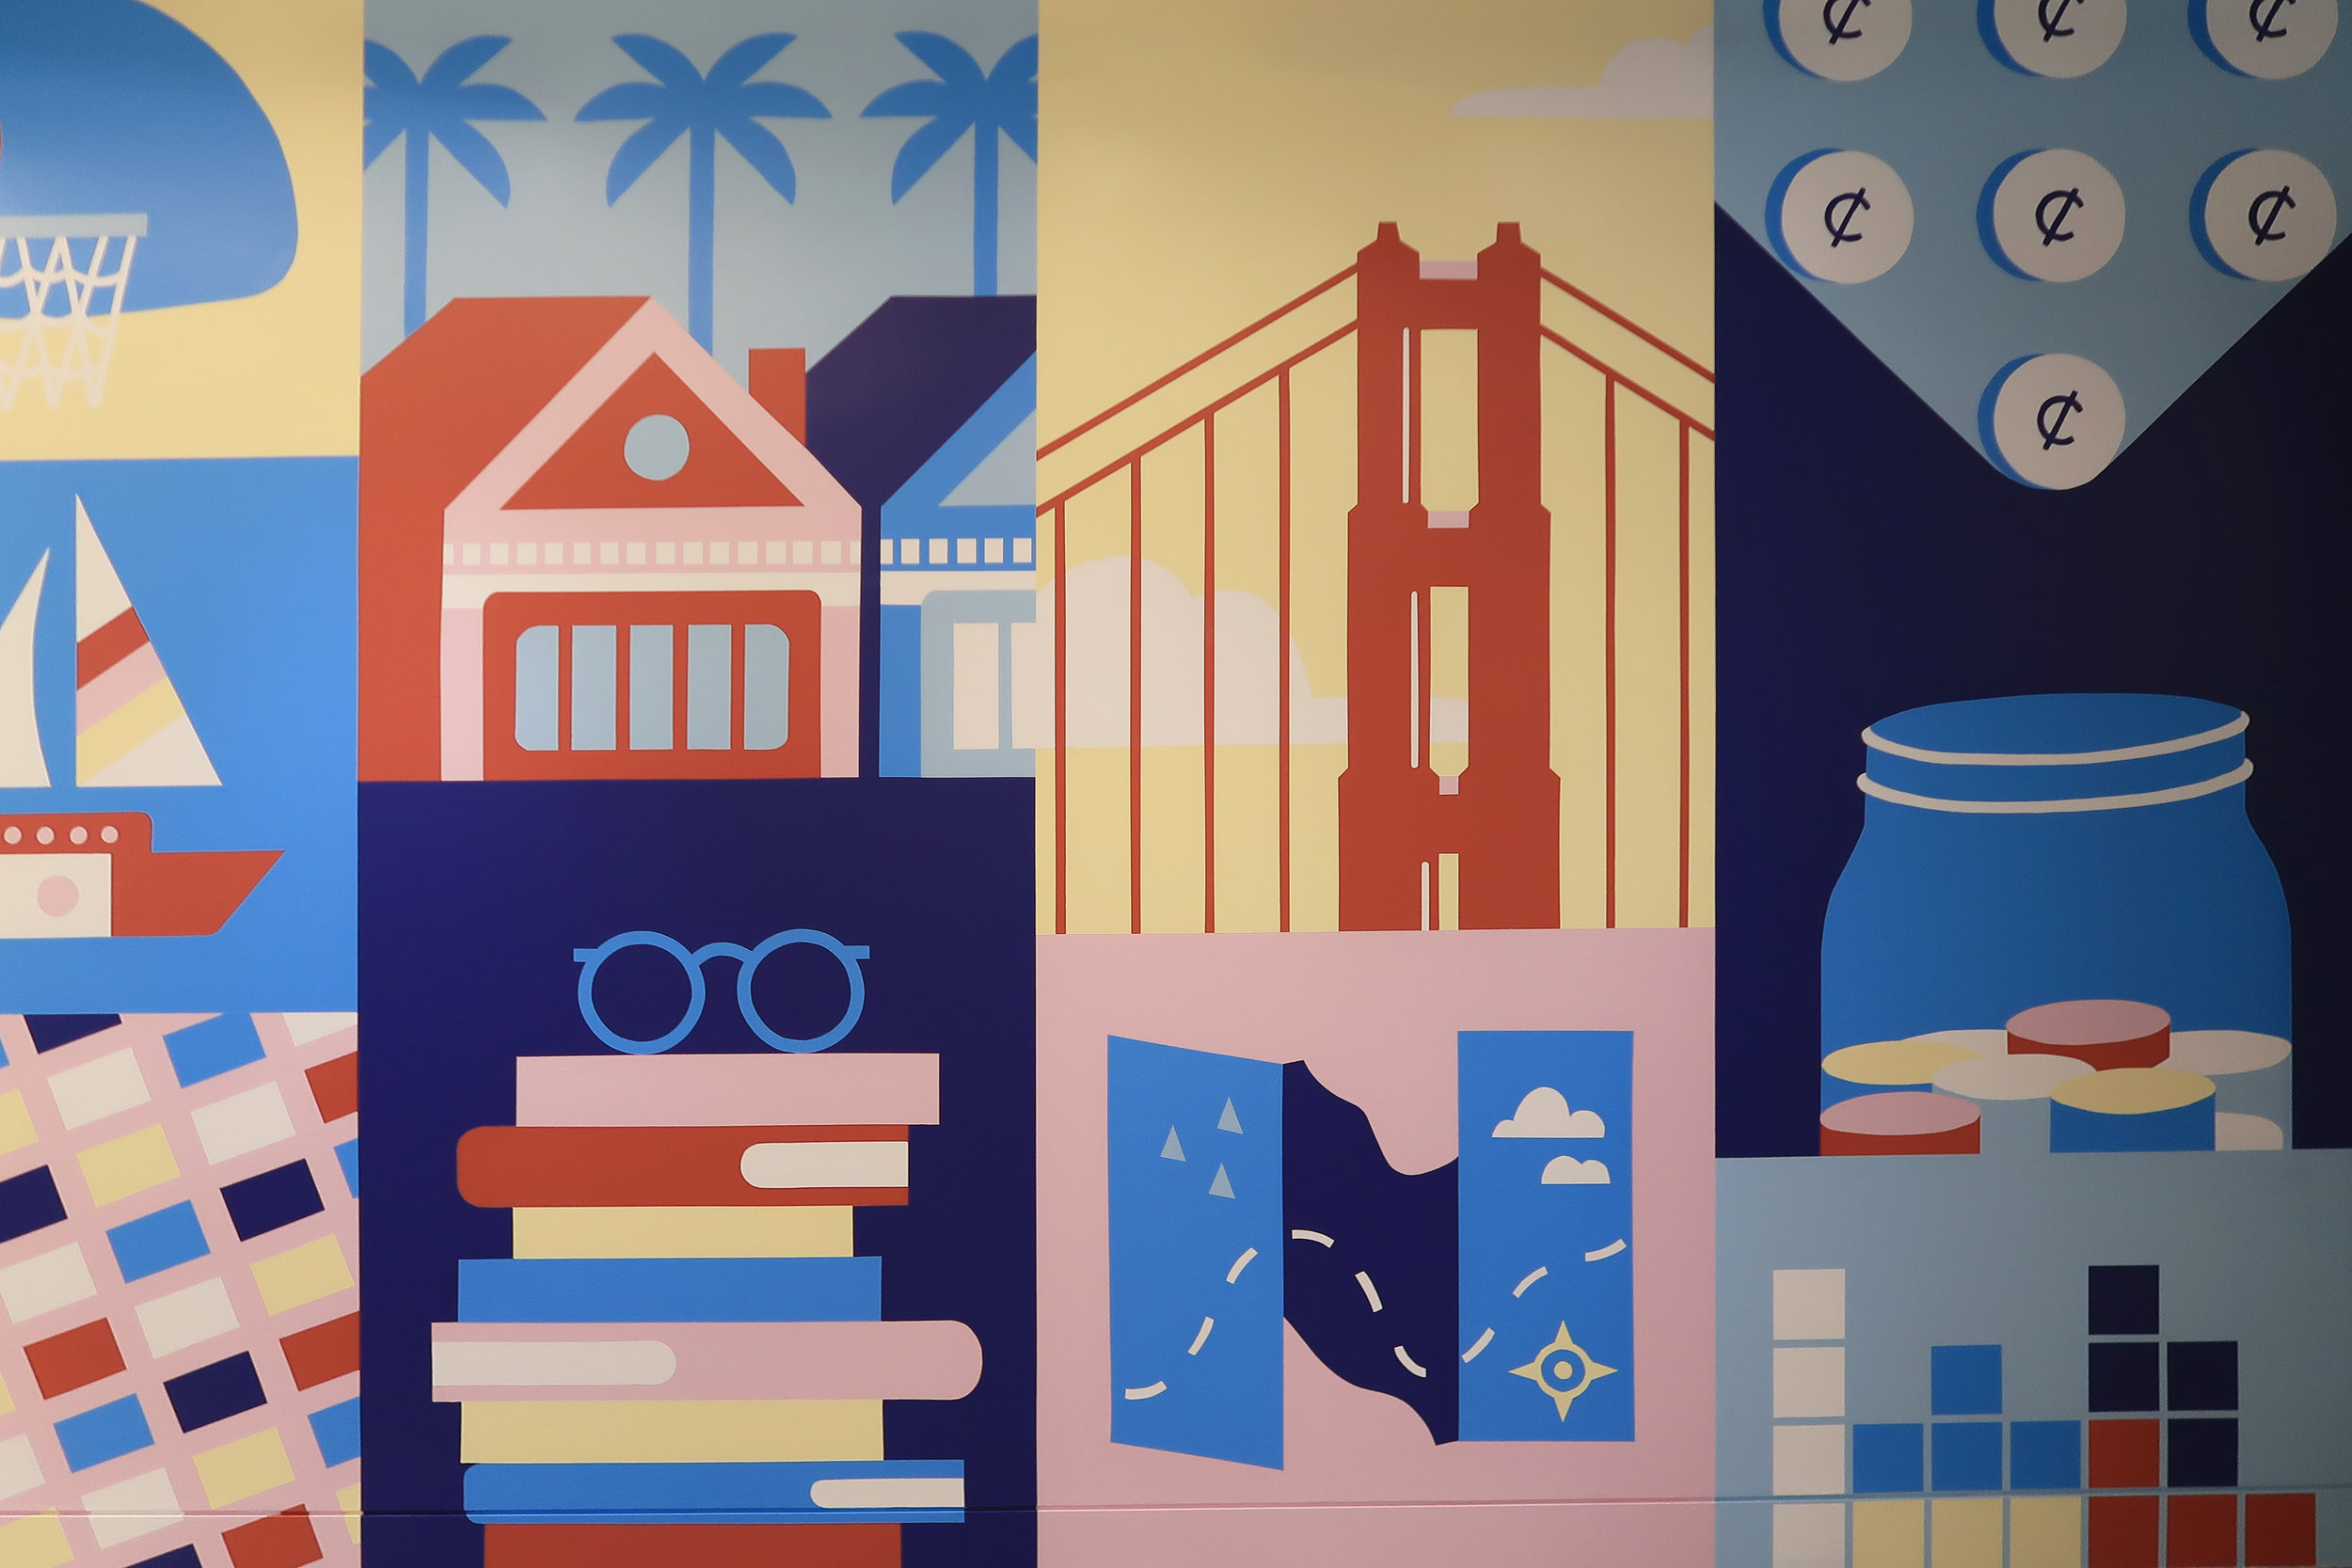 Office-commercial-mural-san-francisco-nerdwallet-wall-and-wall-mural-company_004.jpg